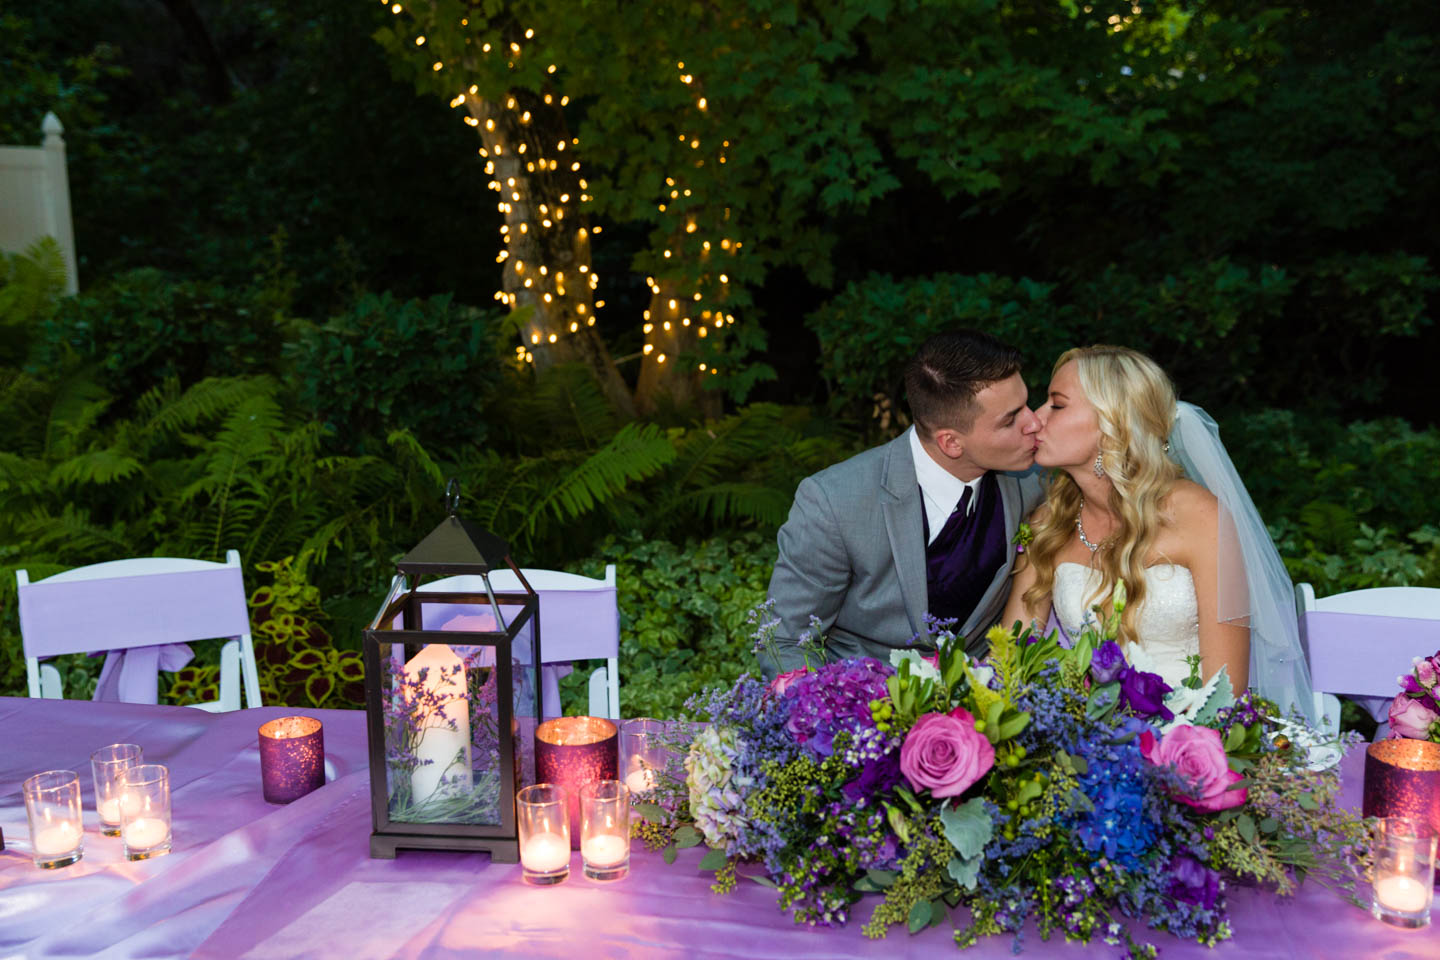 Bride and groom share a kiss during a quiet moment during the reception